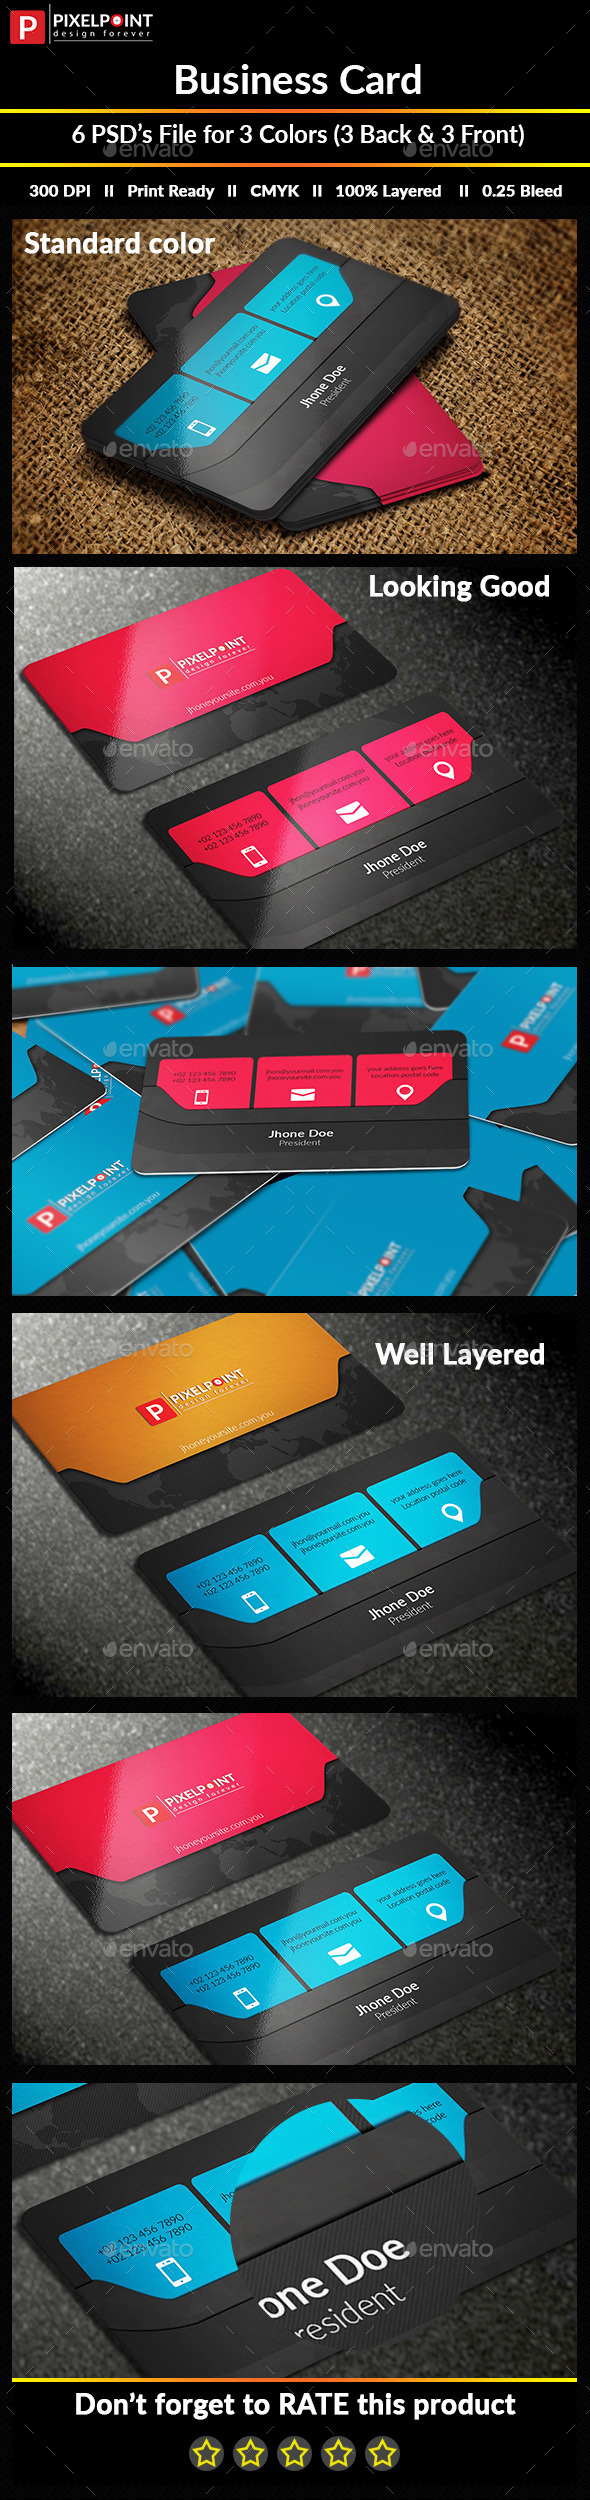 Blackish Personal Business Card - Business Cards Print Templates